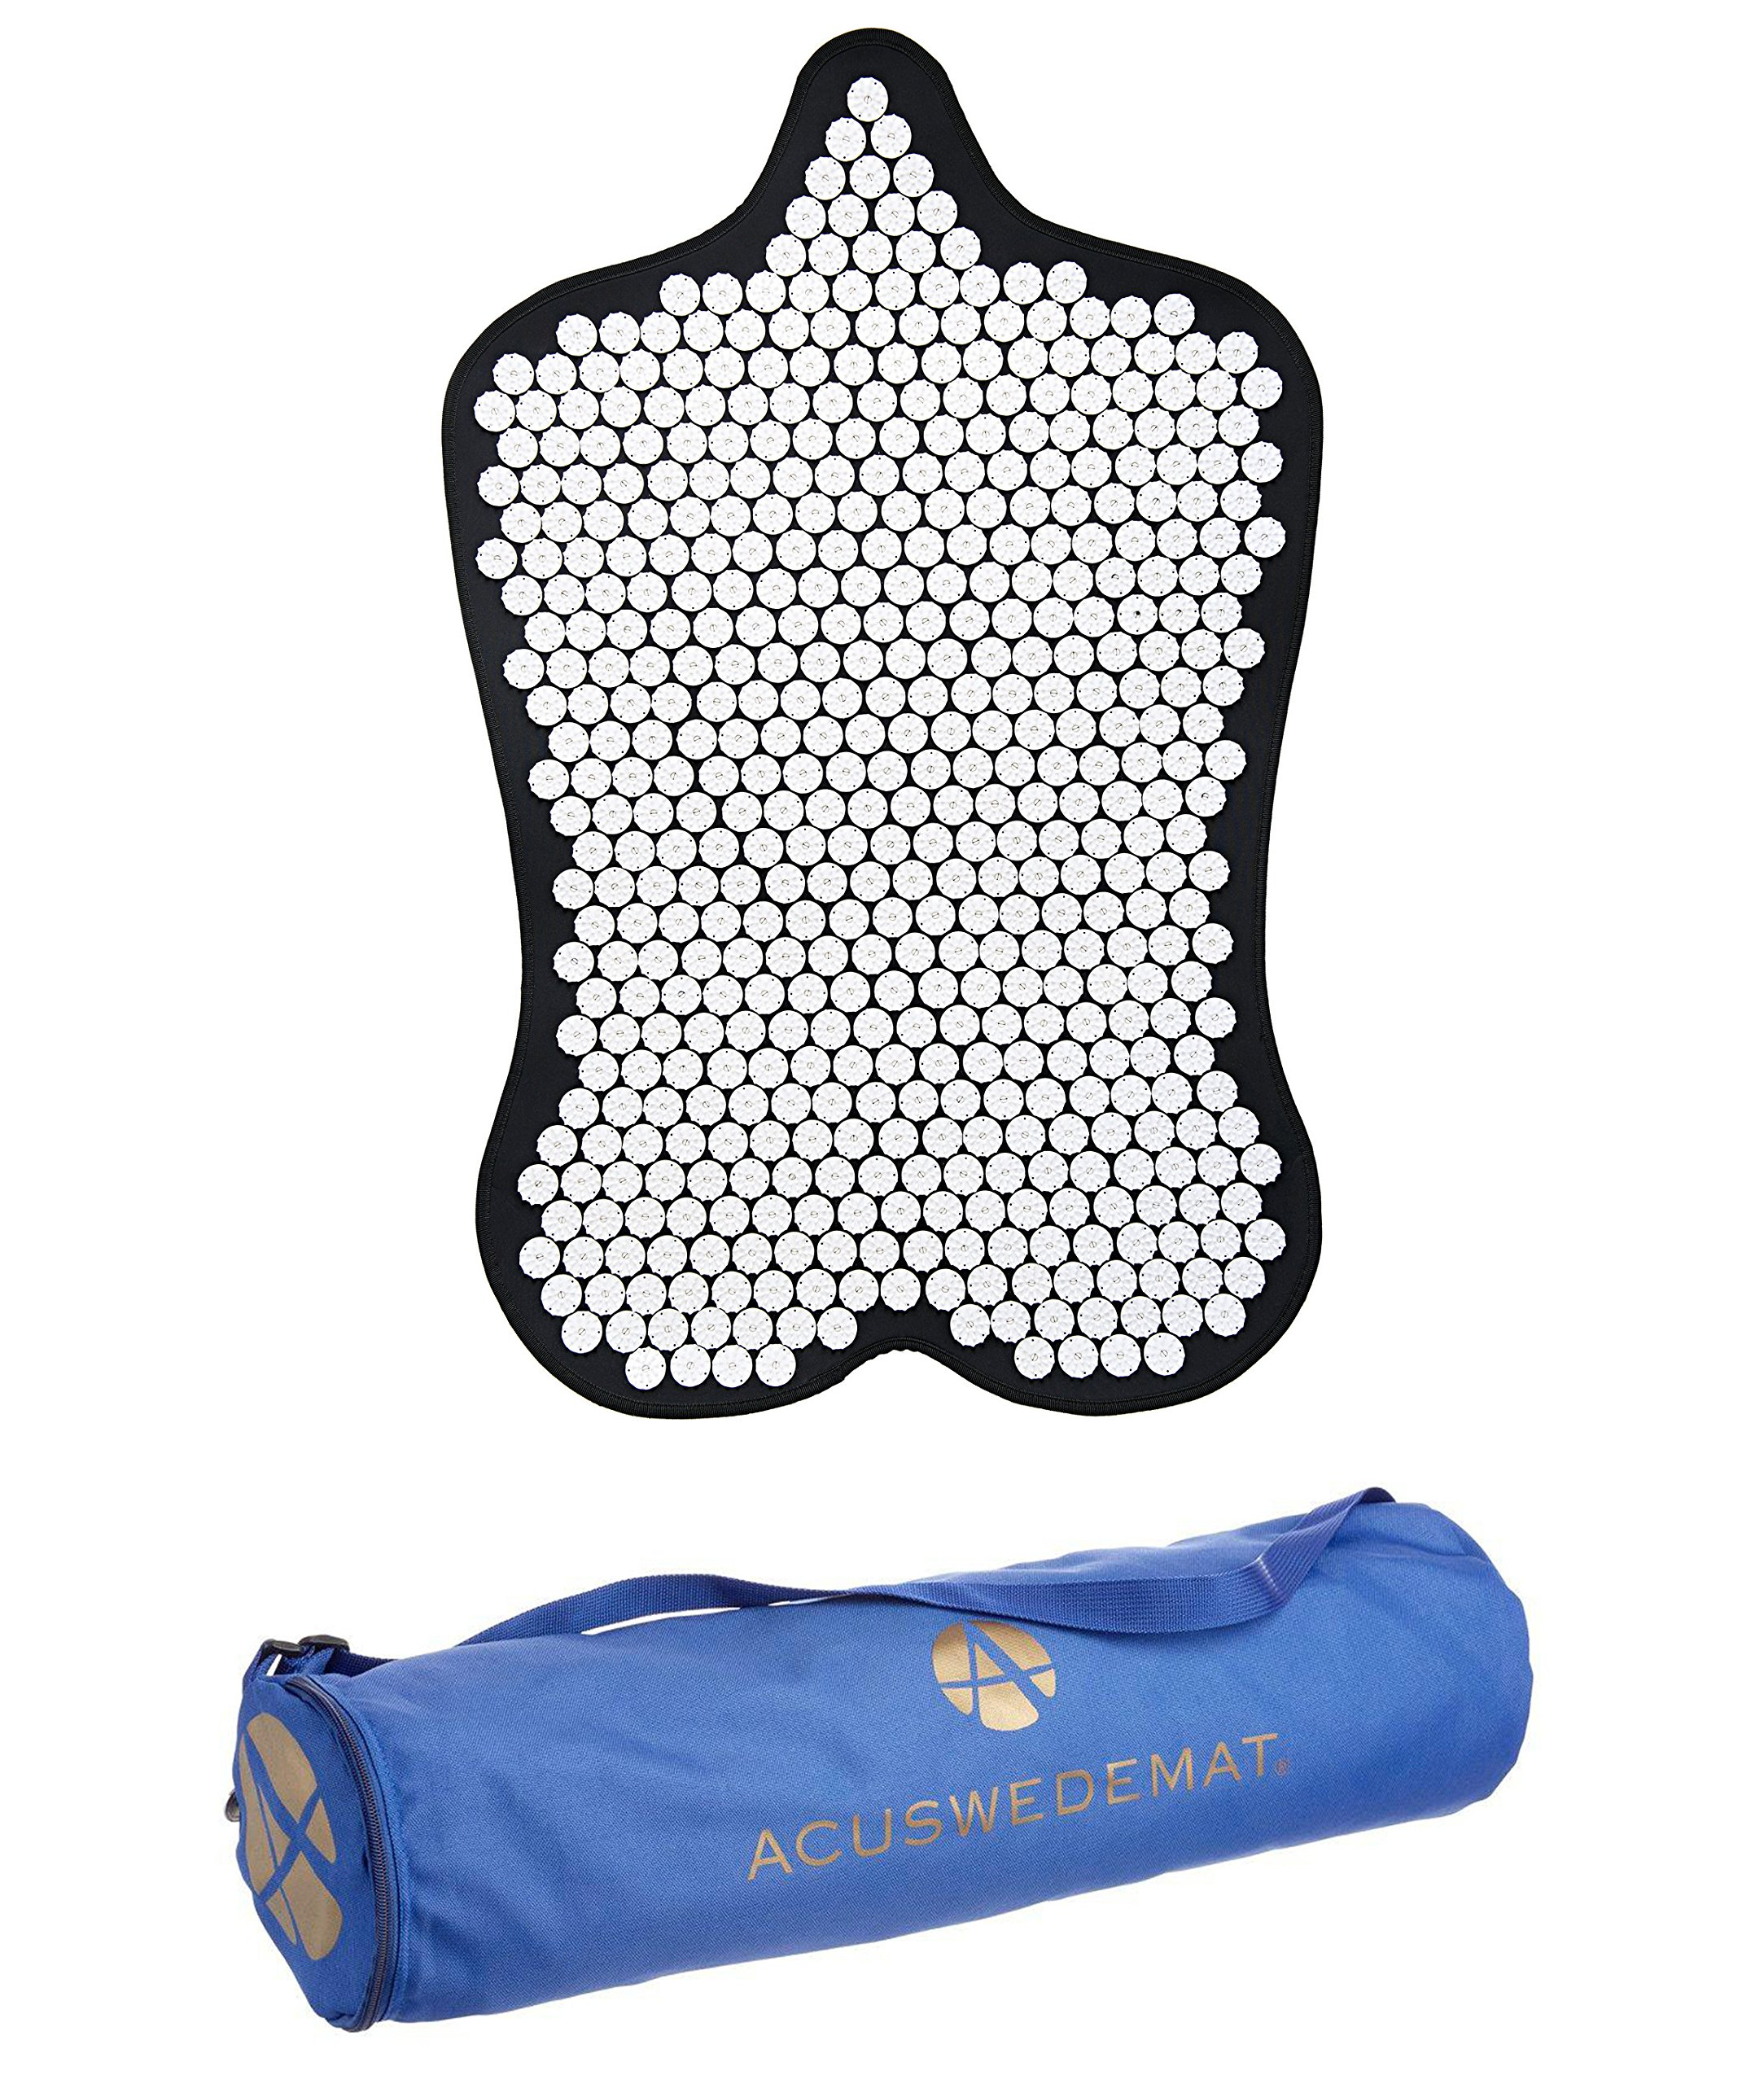 Acuswede Muscle Recovery and Pain Relief Acupressure Mat- Professional Grade w/ 14,000 points | Large Surface Provides Deep Muscle Recovery (Carry Bag Included)